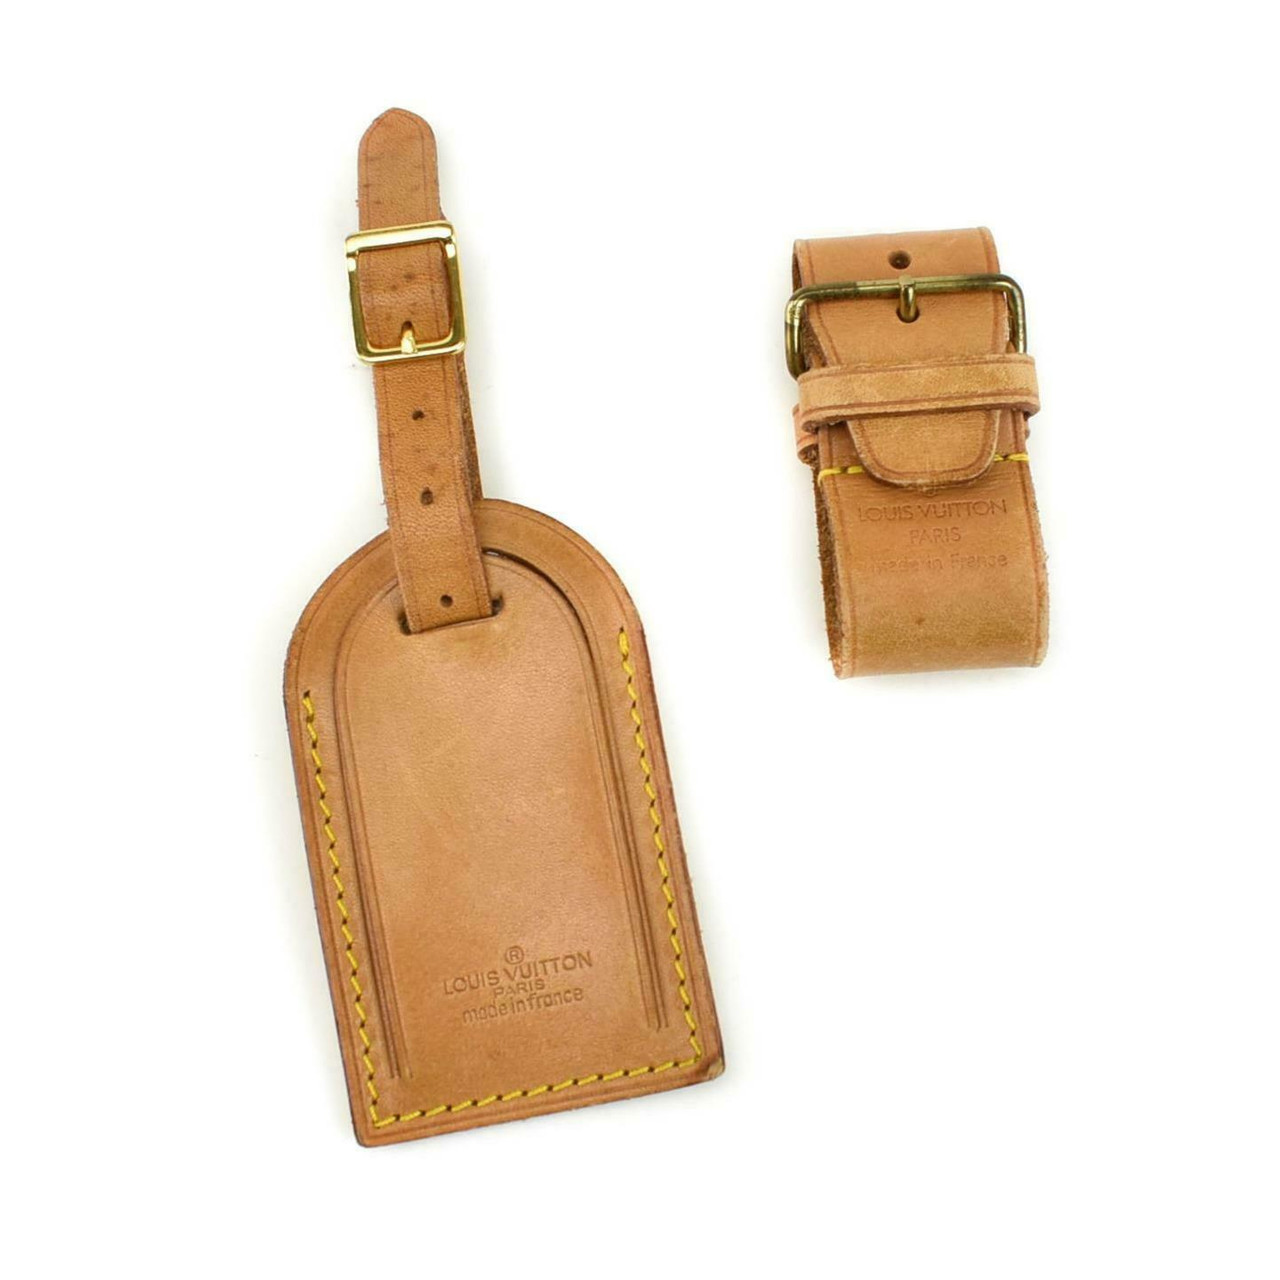 louis vuitton tan vachetta leather logo luggage tag keepall leprix leprix